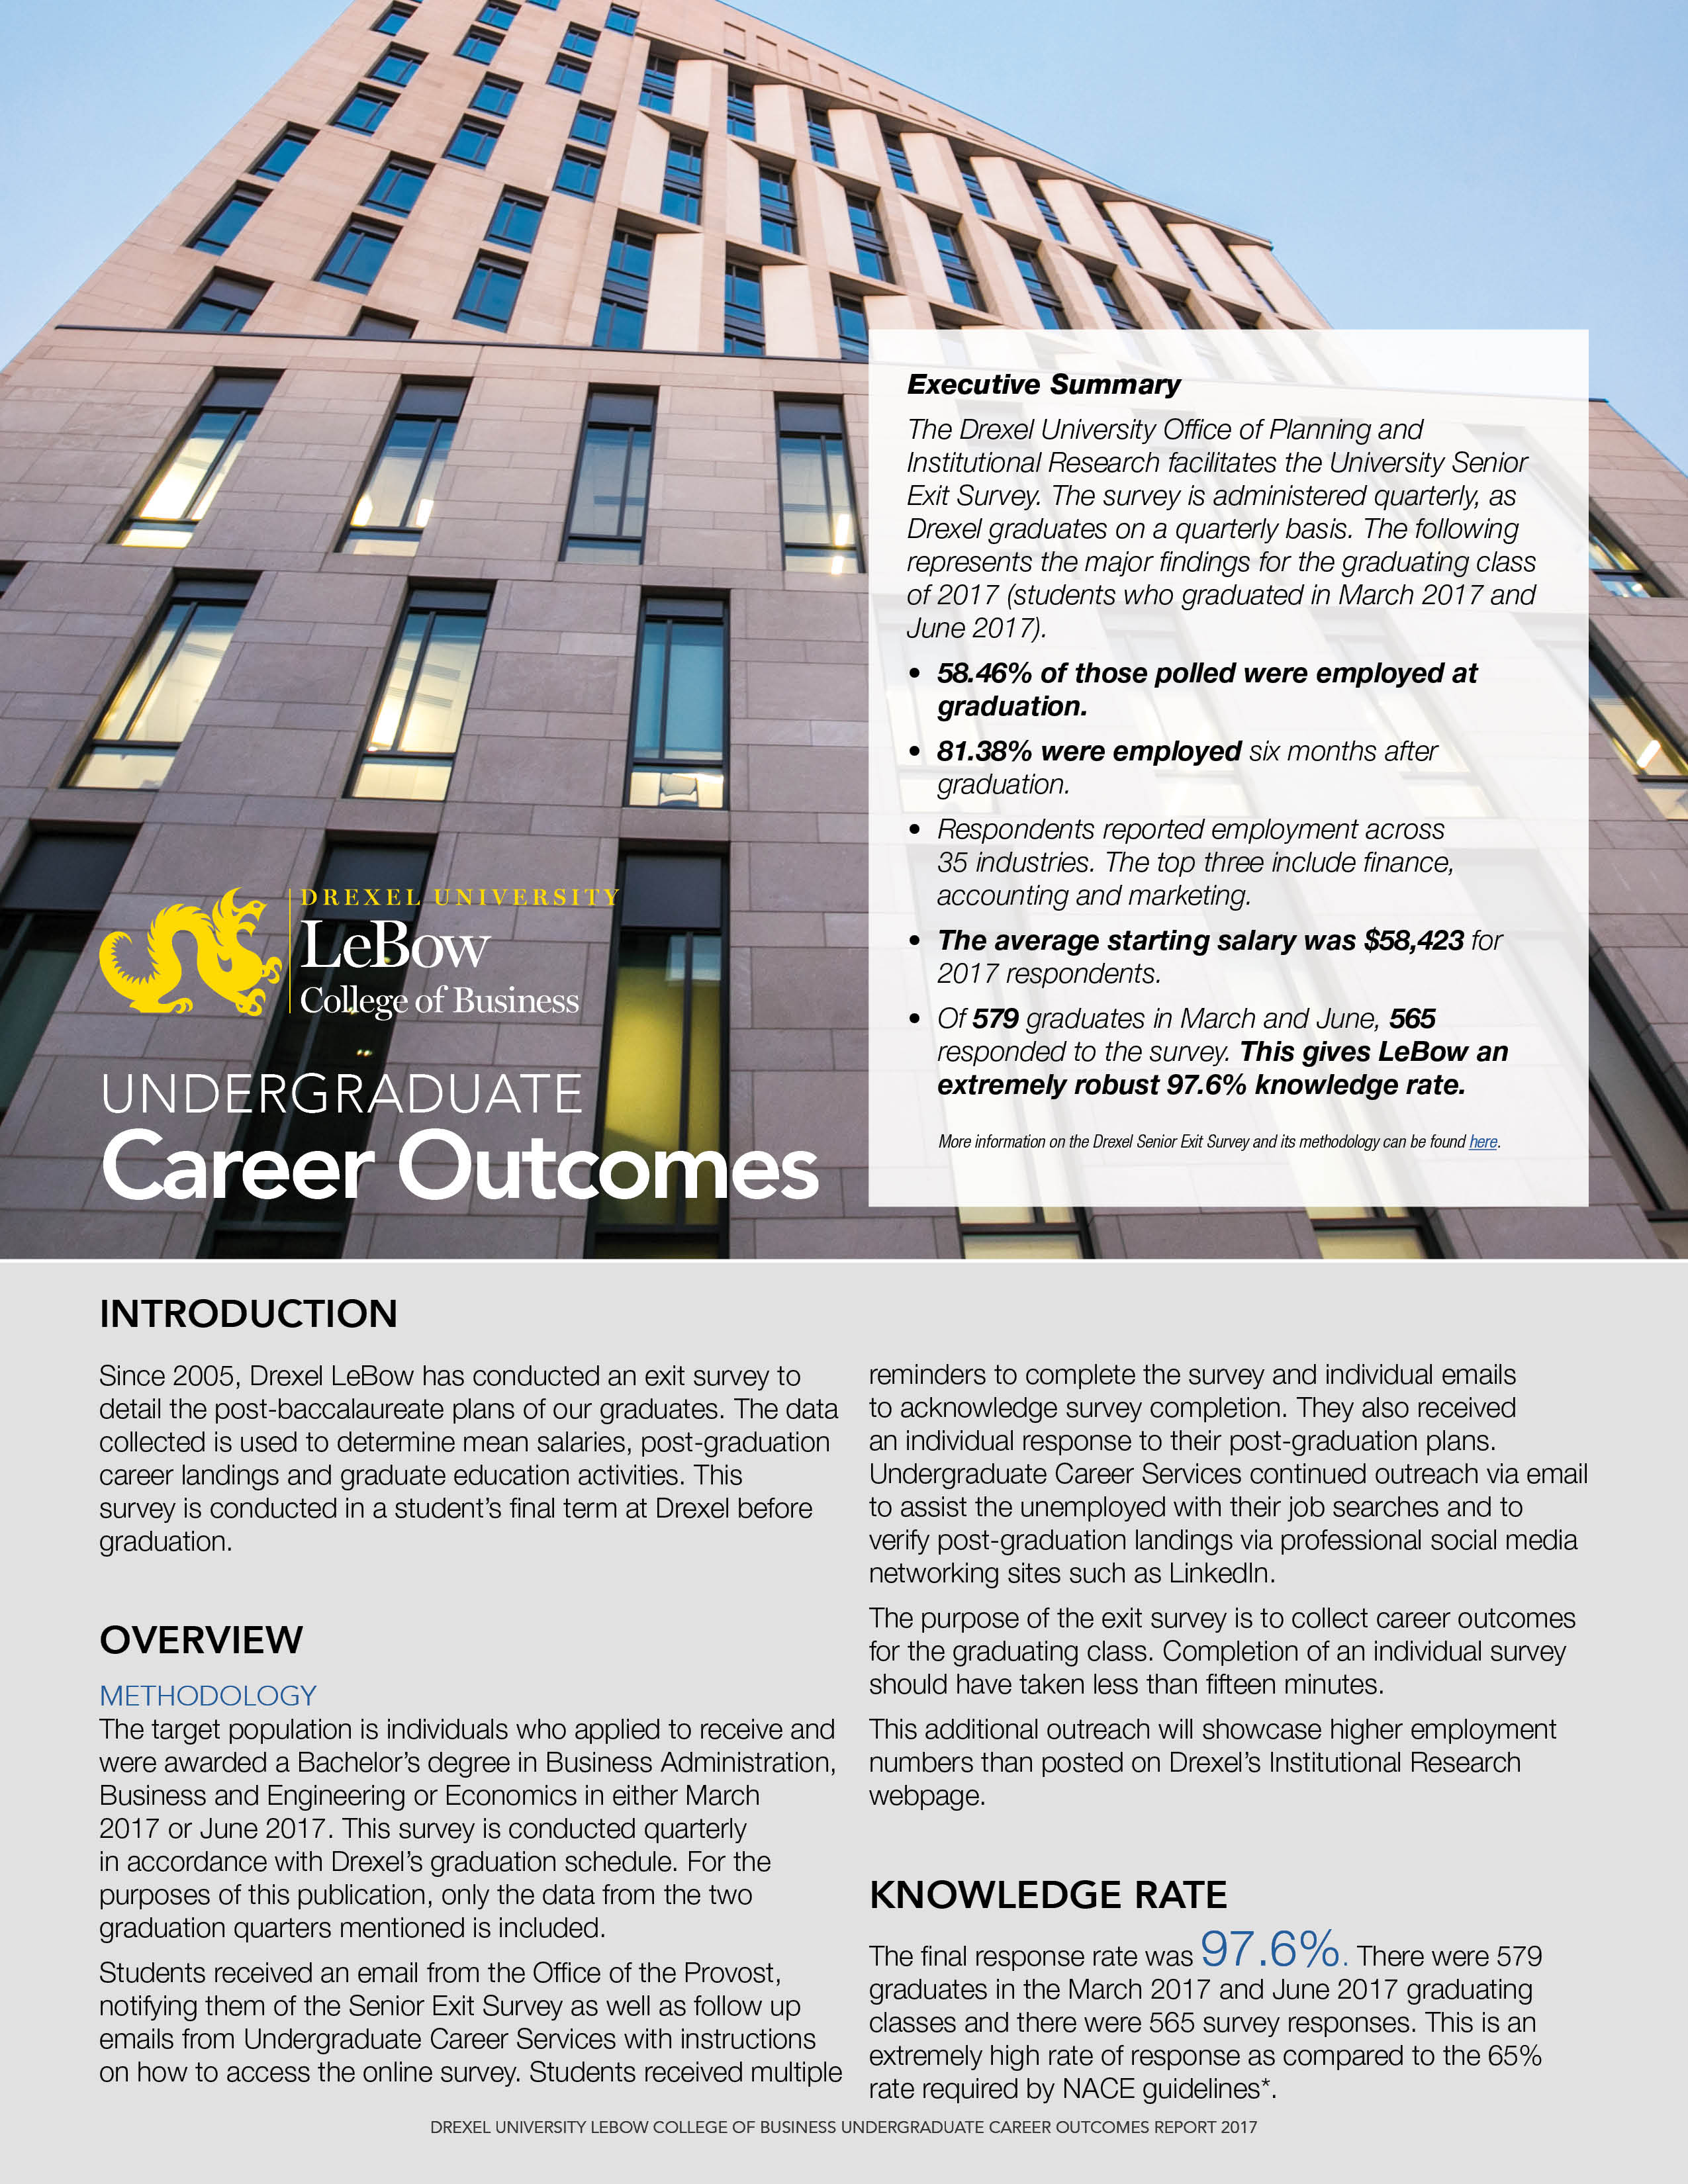 Career Outcomes 2018 Report